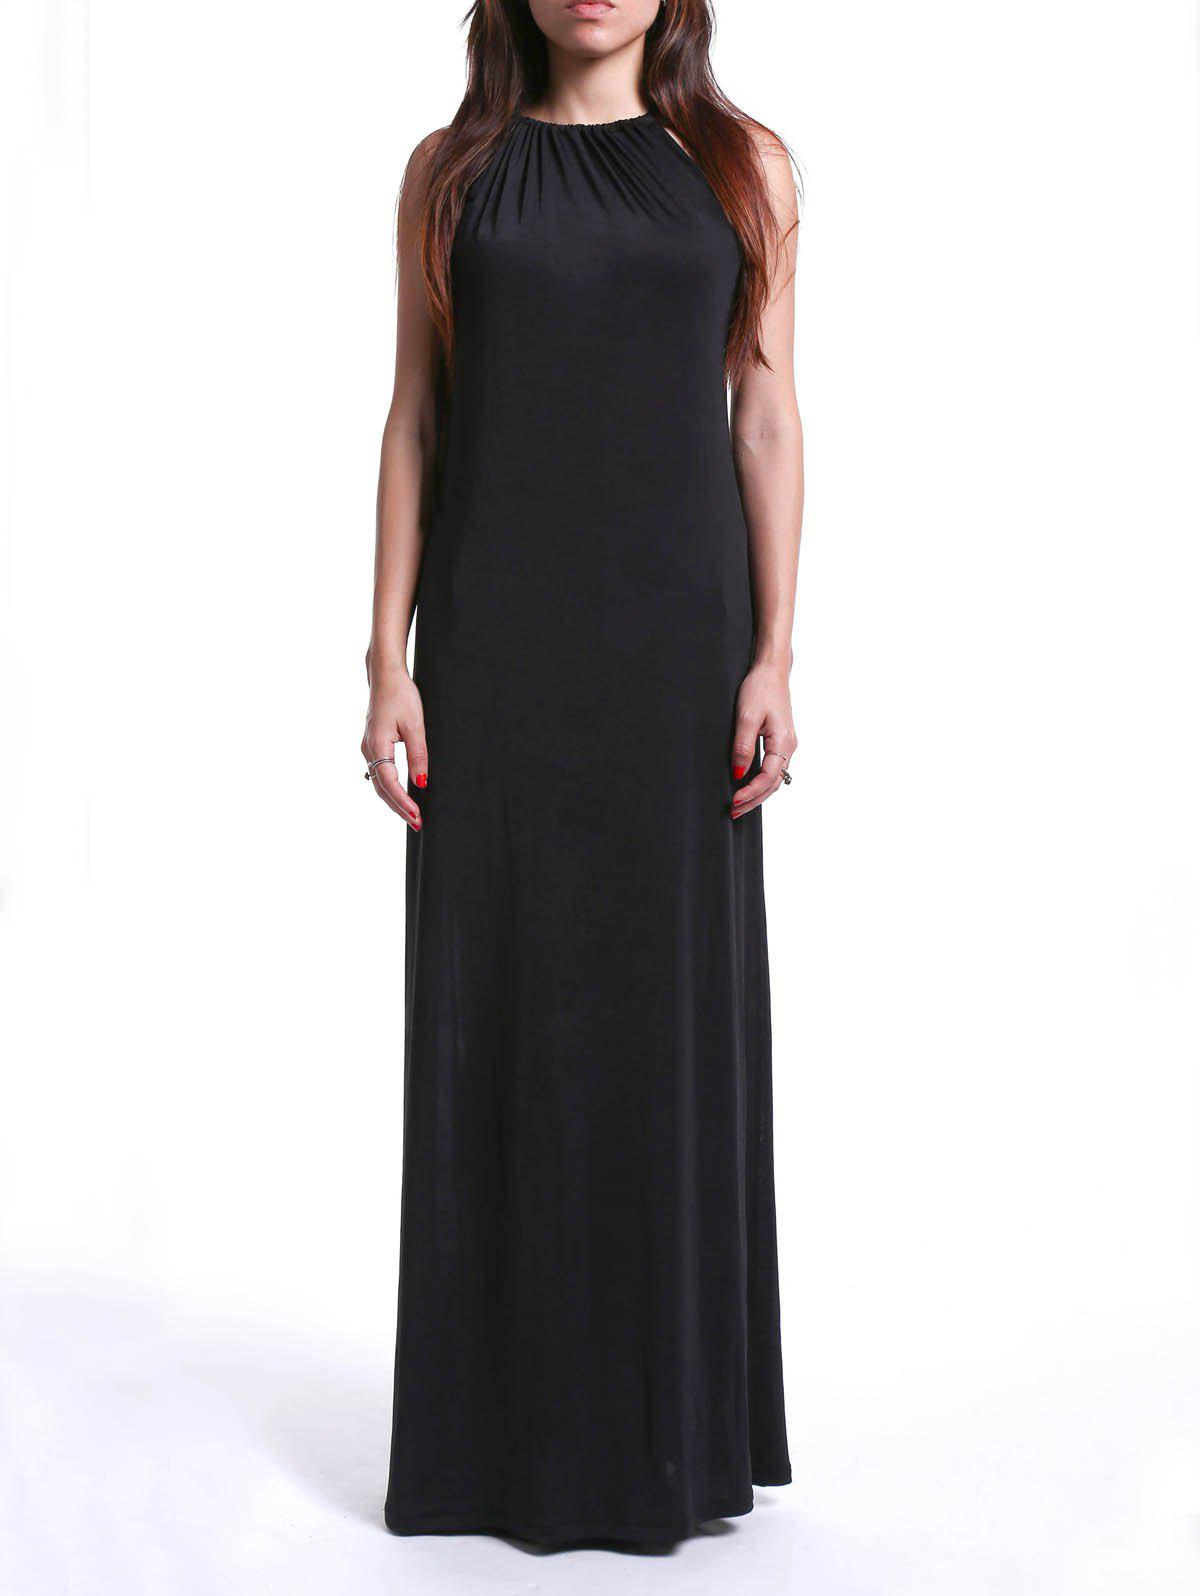 Trendy Women's Strappy Loose-Fitting Black Maxi Dress - BLACK S